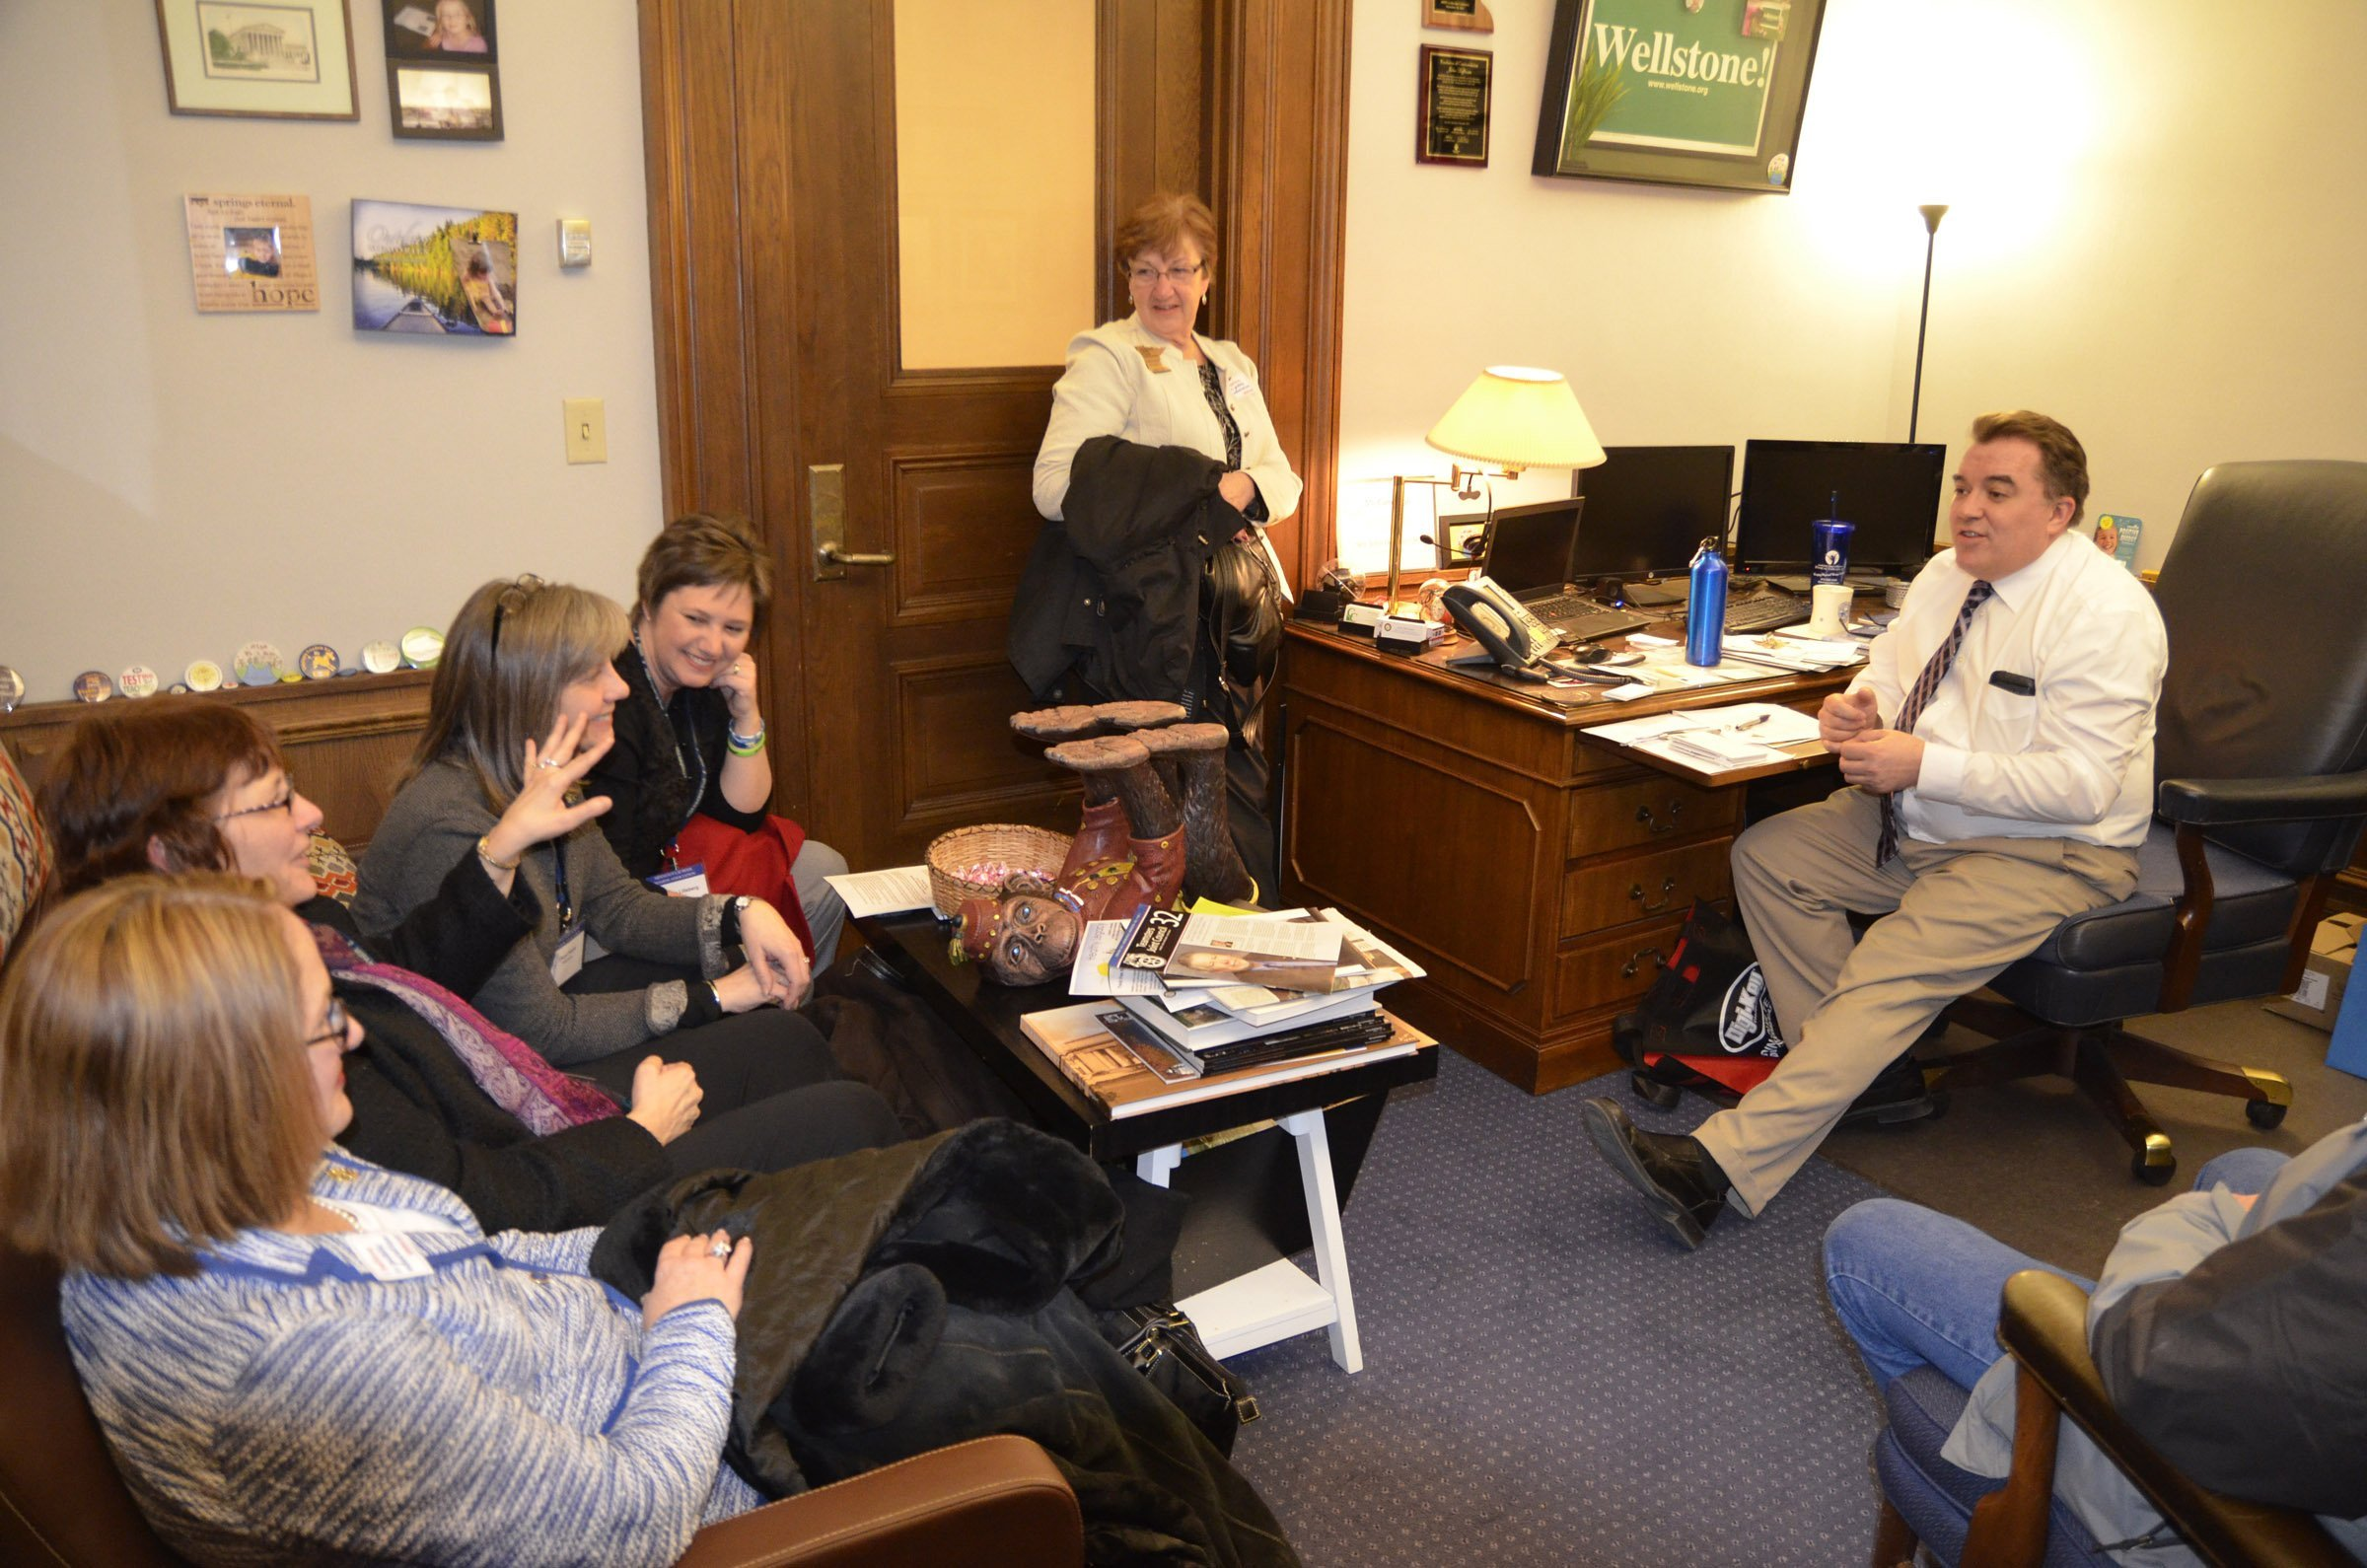 Minnesota school board members met with Sen. John Hoffman. Hoffman, himself a former Anoka-Hennepin School Board member, is the author of a bill (SF 163) that would add an increase of $300 per pupil to the education funding formula in fiscal year 2016.